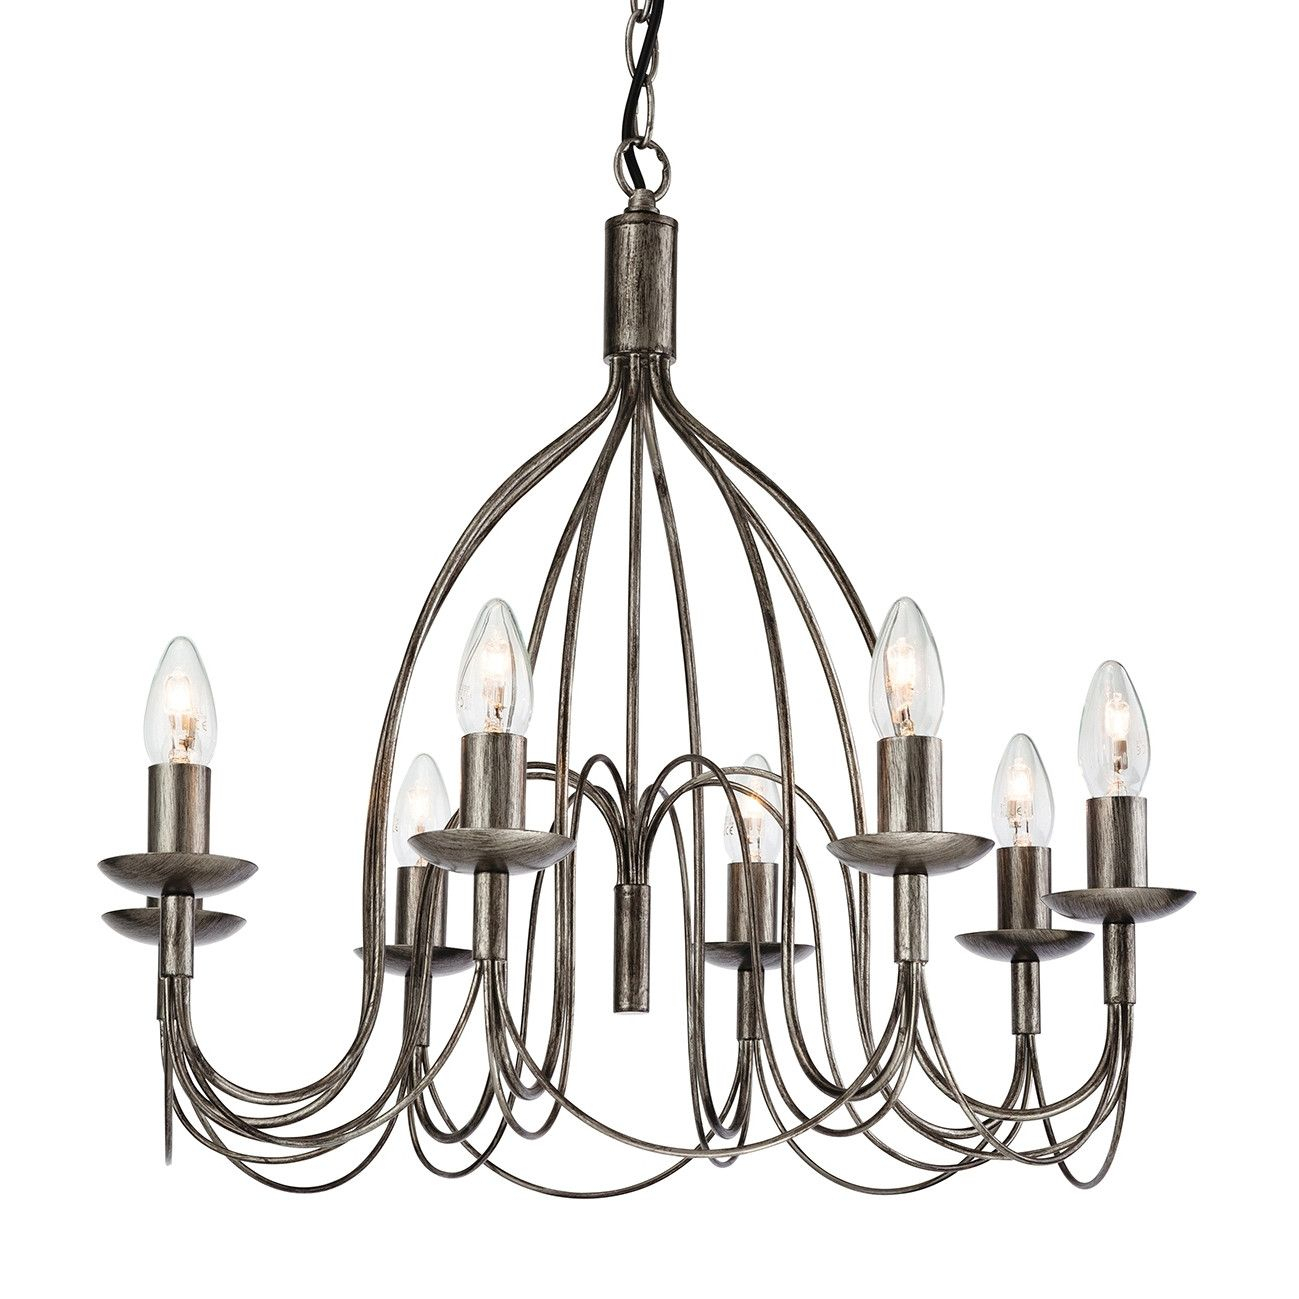 Shire 8-Light Candle-Style Chandelier | Lighting | Ceiling for Camilla 9-Light Candle Style Chandeliers (Image 24 of 30)